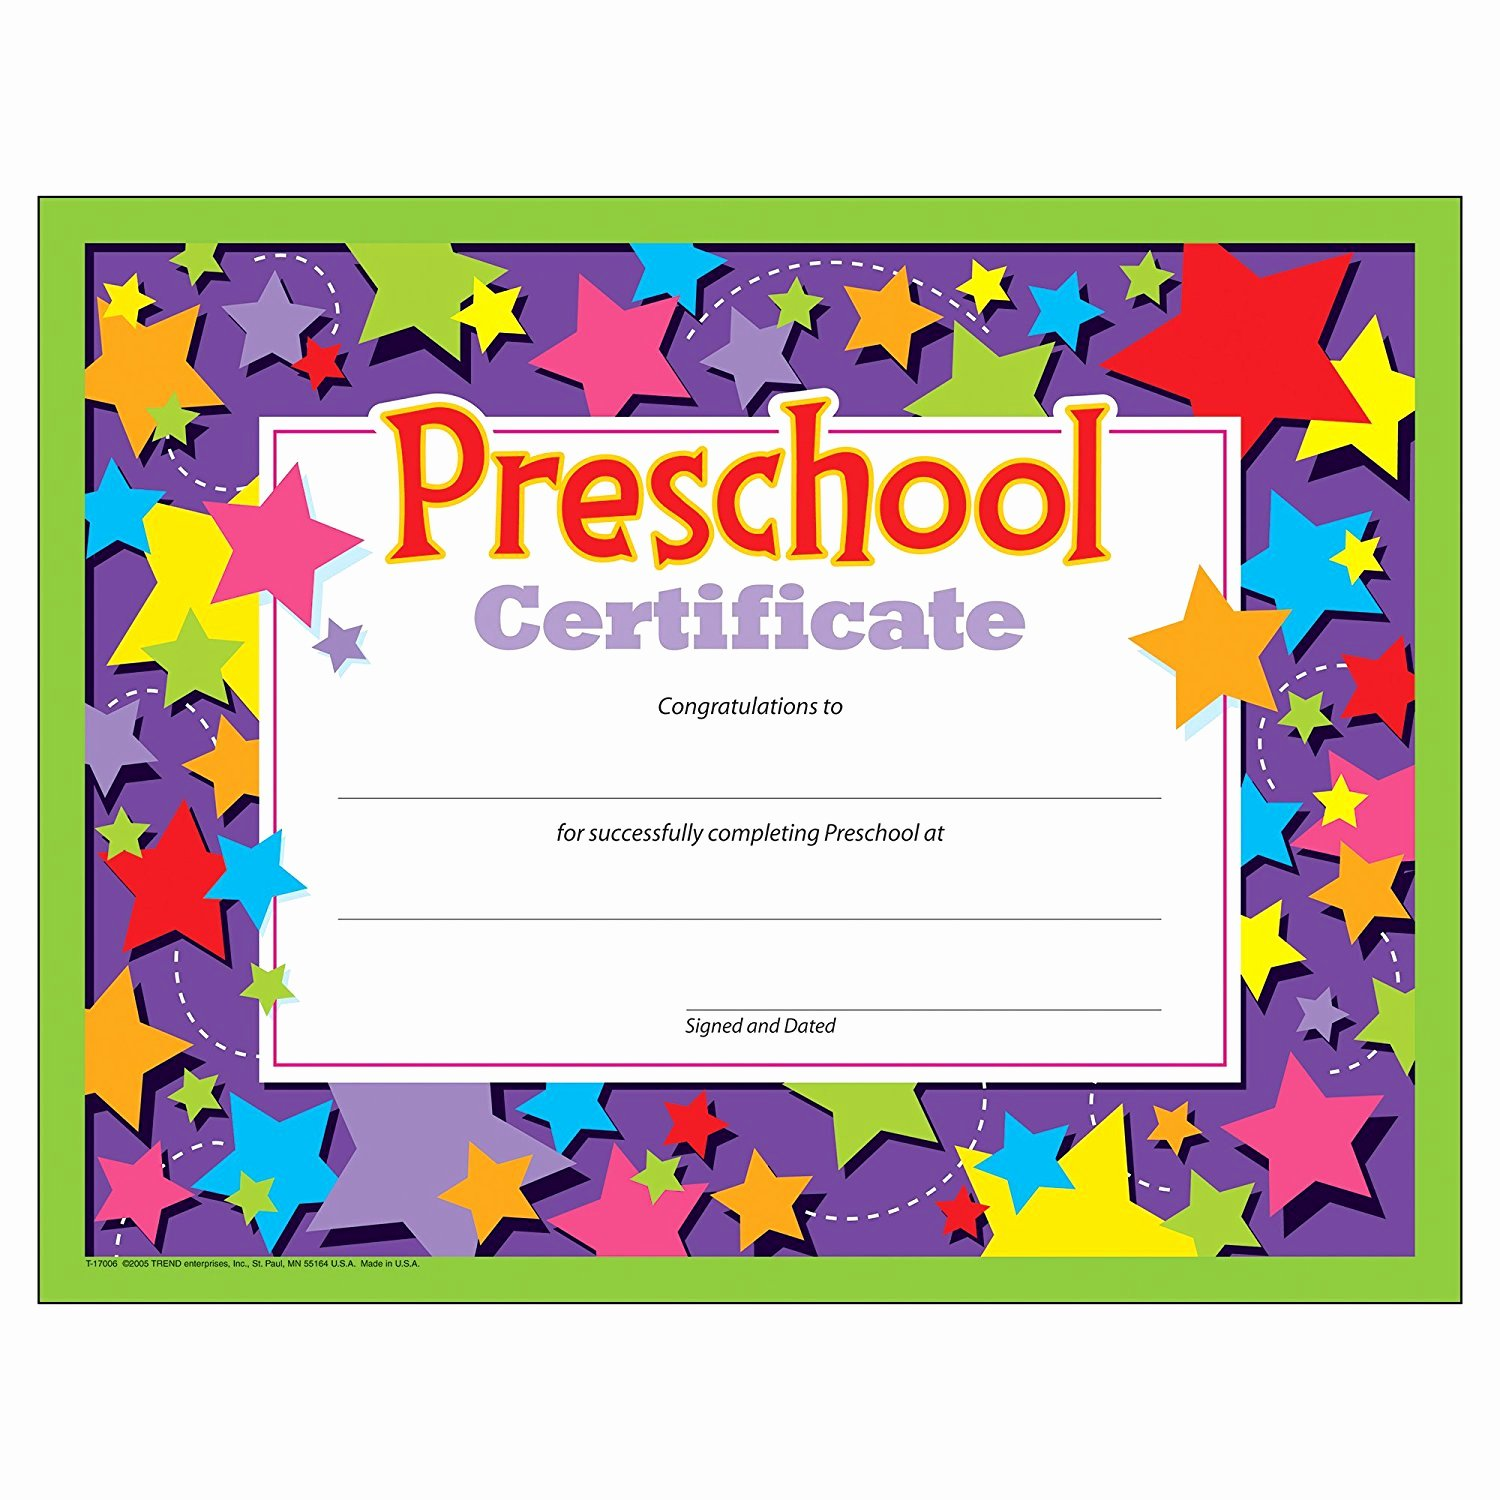 Kindergarten Diploma Template Free Luxury Preschool Graduation Certificate 30 Count Ctt Graphics